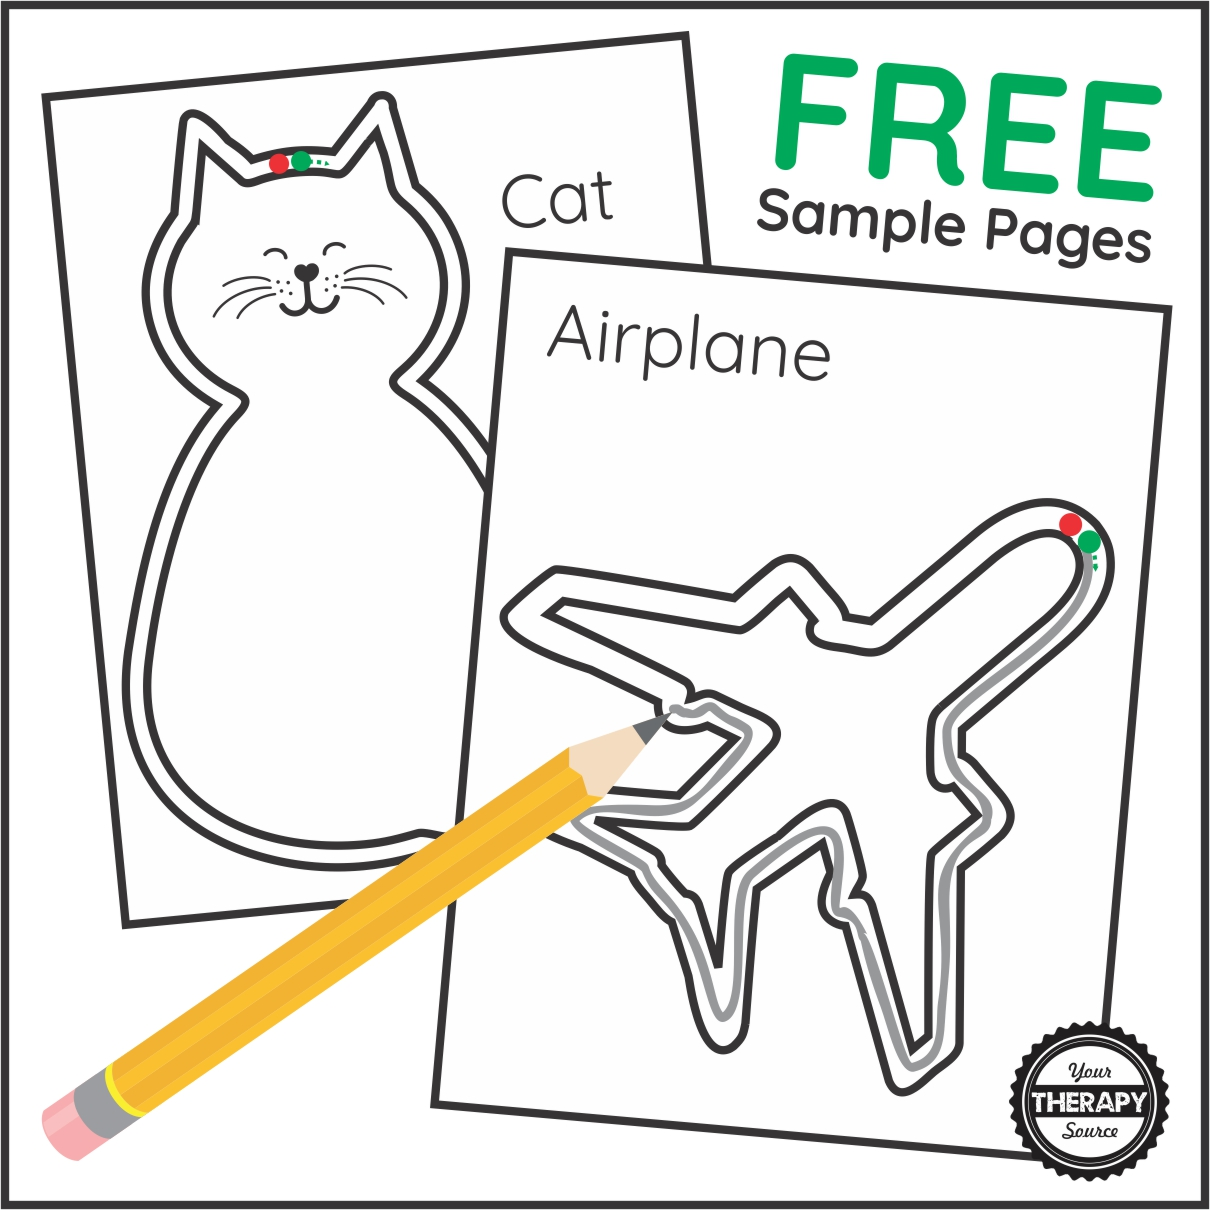 Are you looking for something a little different for students to practice simple visual motor skills?  These two free sample pages from Simple Shape Drawings might be just the activity you are looking for.